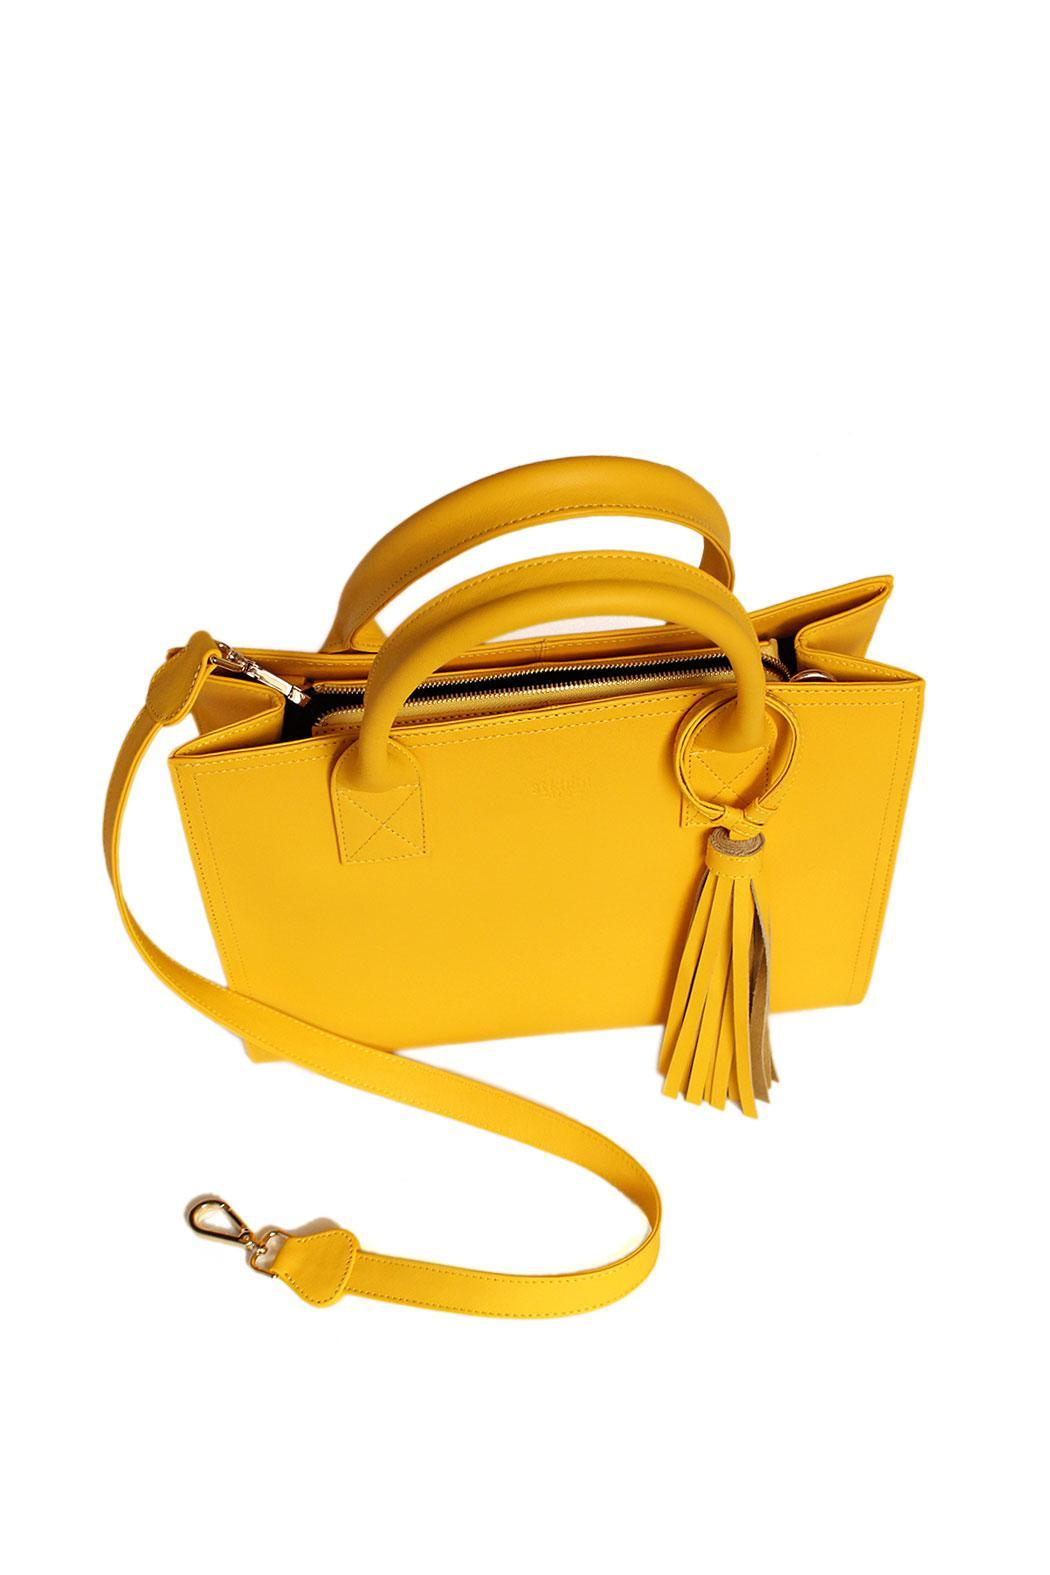 estocolmoapparel Yellow Leather Handbag from Mexico by ...